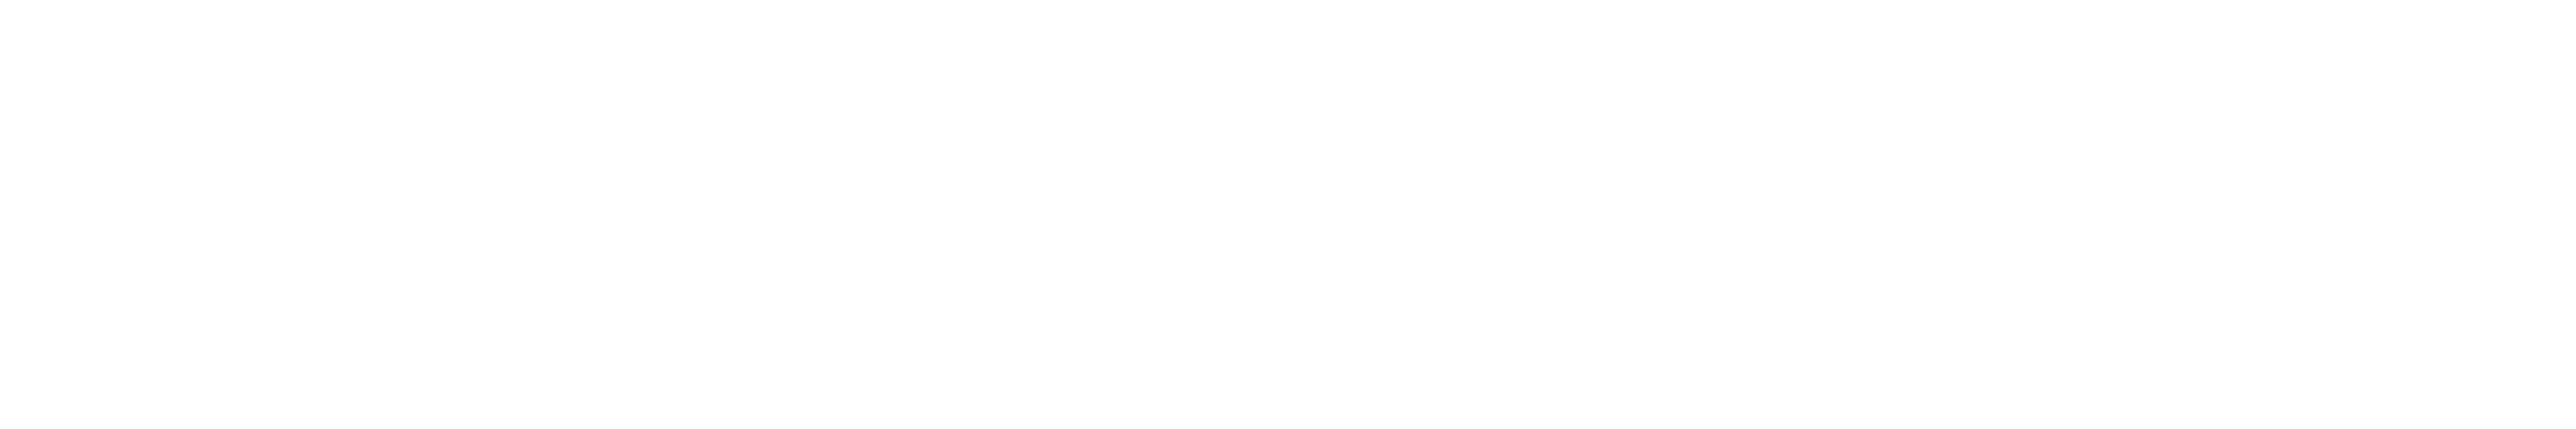 services-ok.png